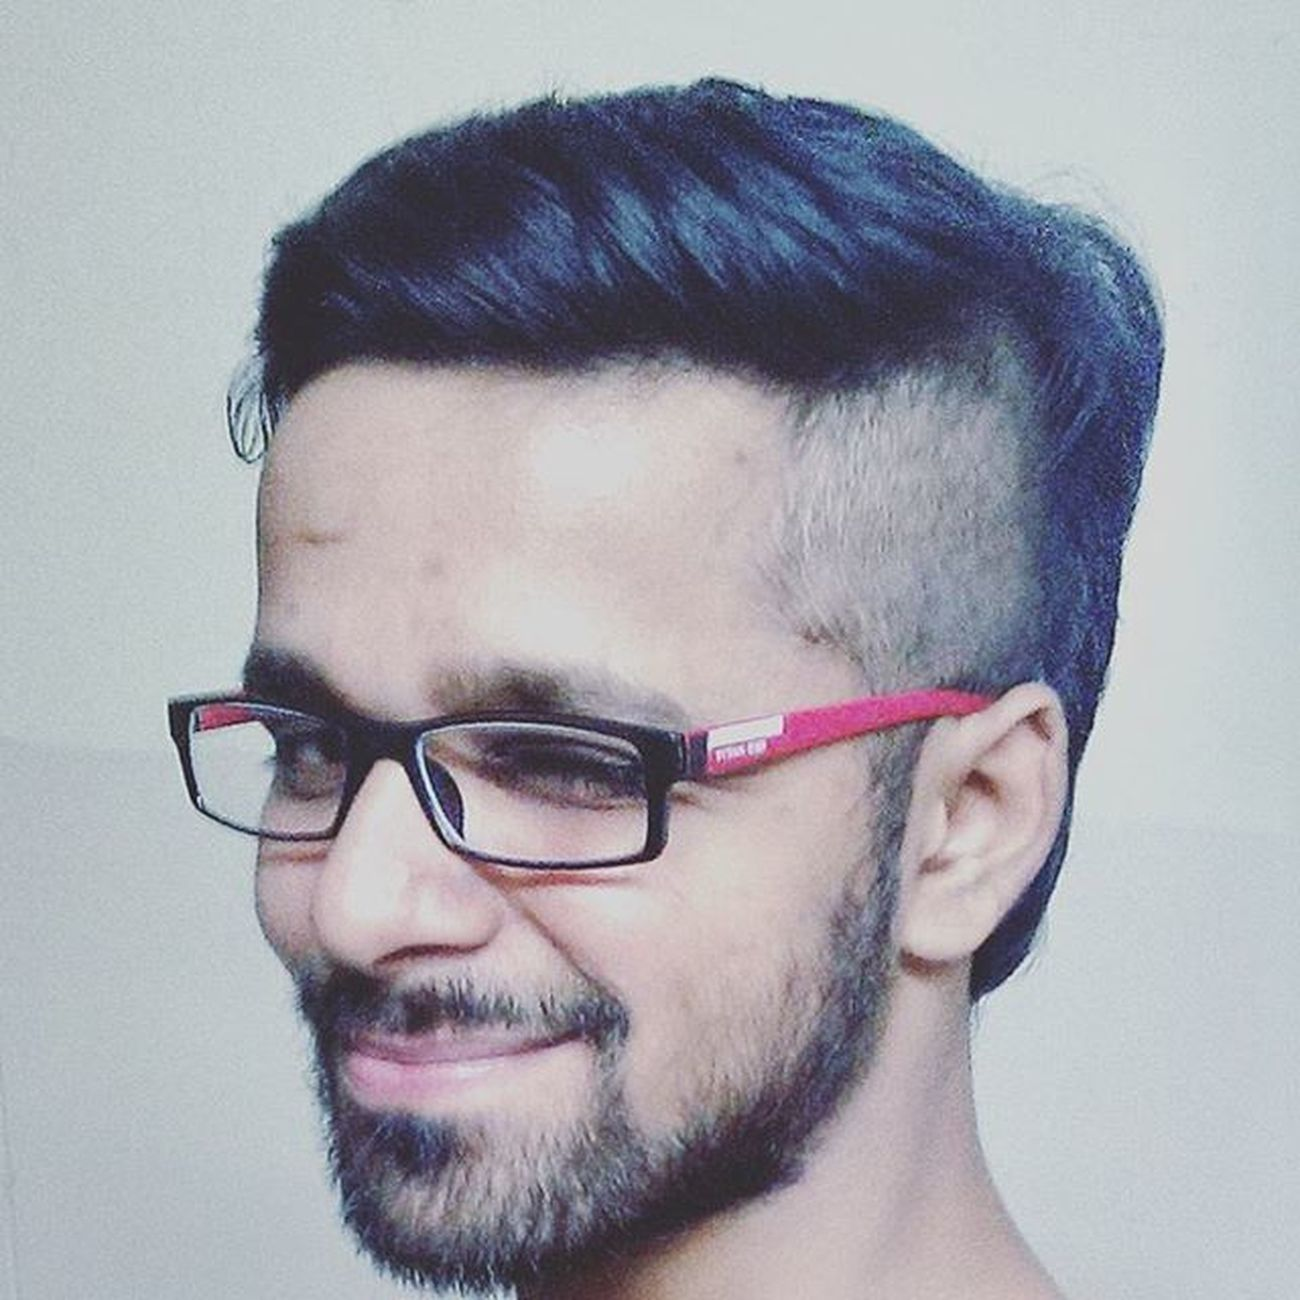 The Best  Thing about Me is that Idontcare . 😯 Love Winter Handsome Instalike Selfie Swag Smart Follow Instadaily Friends Beard Me Style Followme Instagood Amazing Wink Fun Smile Picoftheday Happy beardgang hair titan eyeplus specs hairstyle 😎👈